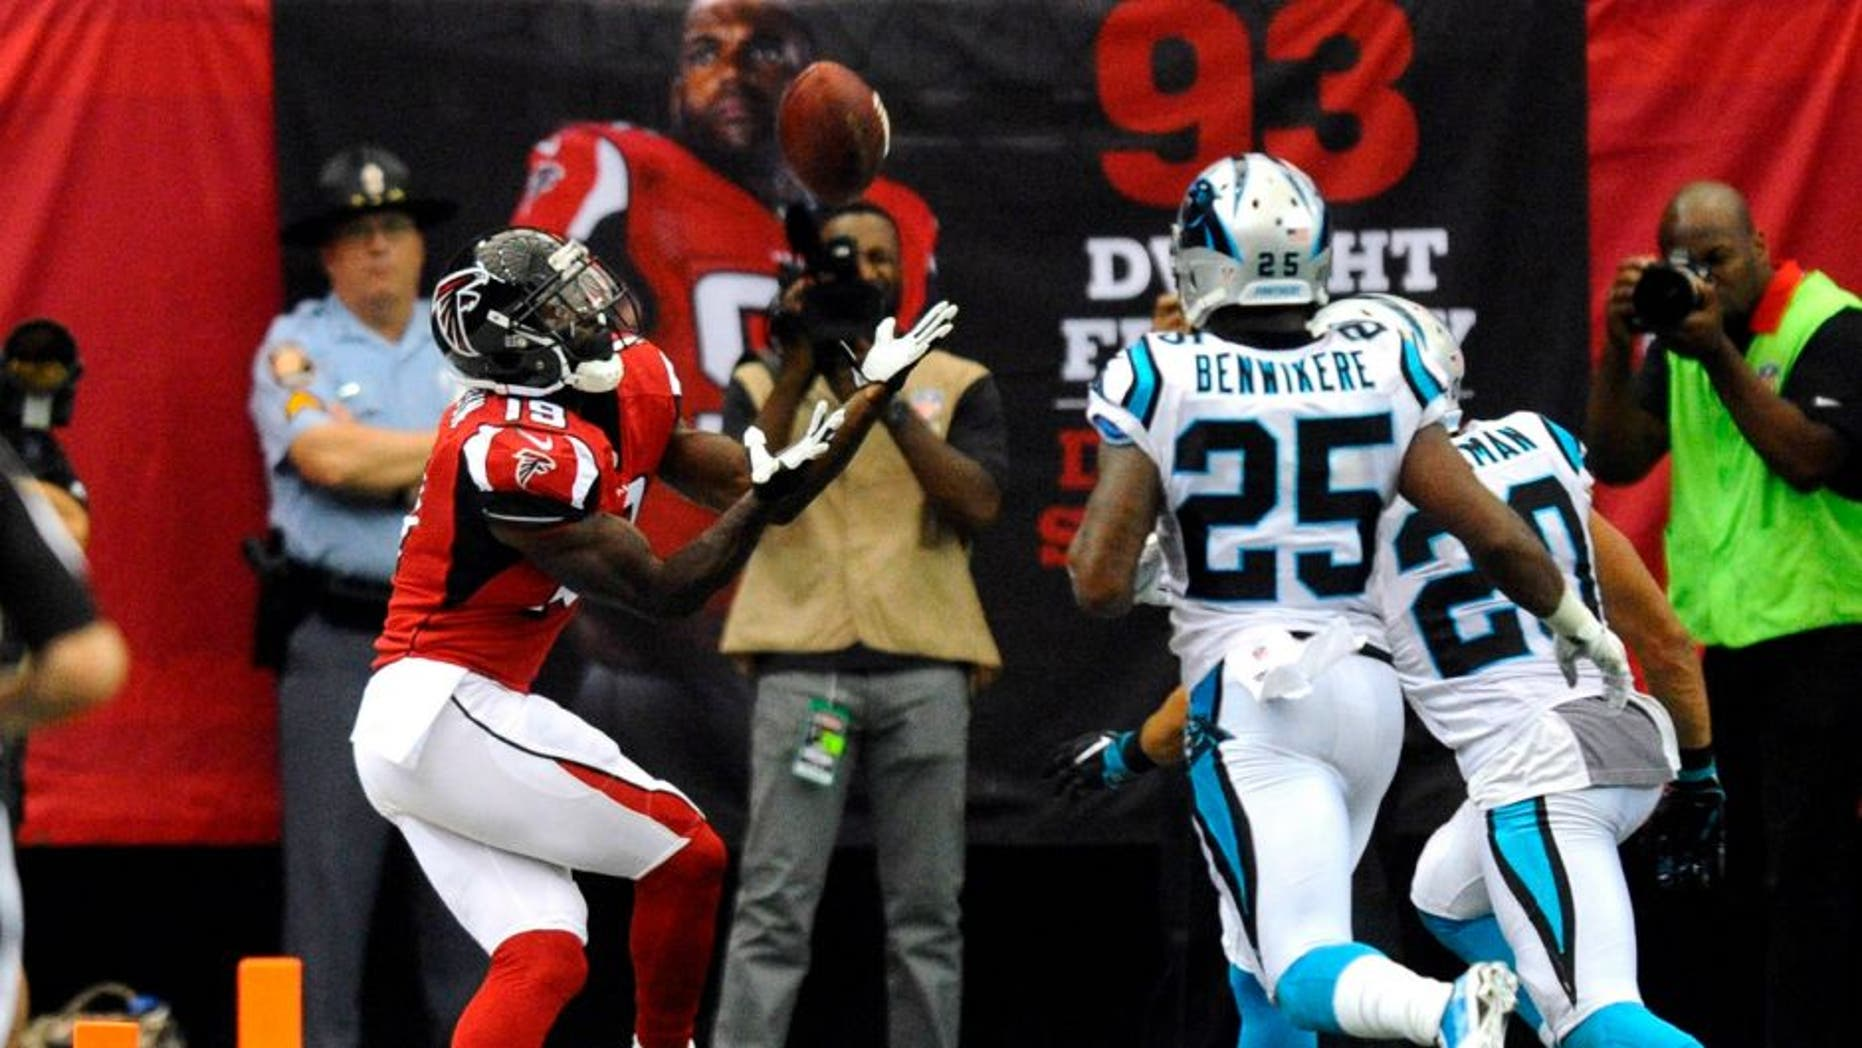 Atlanta Falcons wide receiver Aldrick Robinson (19) makes a touchdown reception past Carolina Panthers strong safety Kurt Coleman (20) and cornerback Bene' Benwikere (25) in the second half on Sunday, Oct. 2, 2016 at the Georgia Dome in Atlanta, Ga. Atlanta won 48-33. (David T. Foster III/Charlotte Observer/TNS)